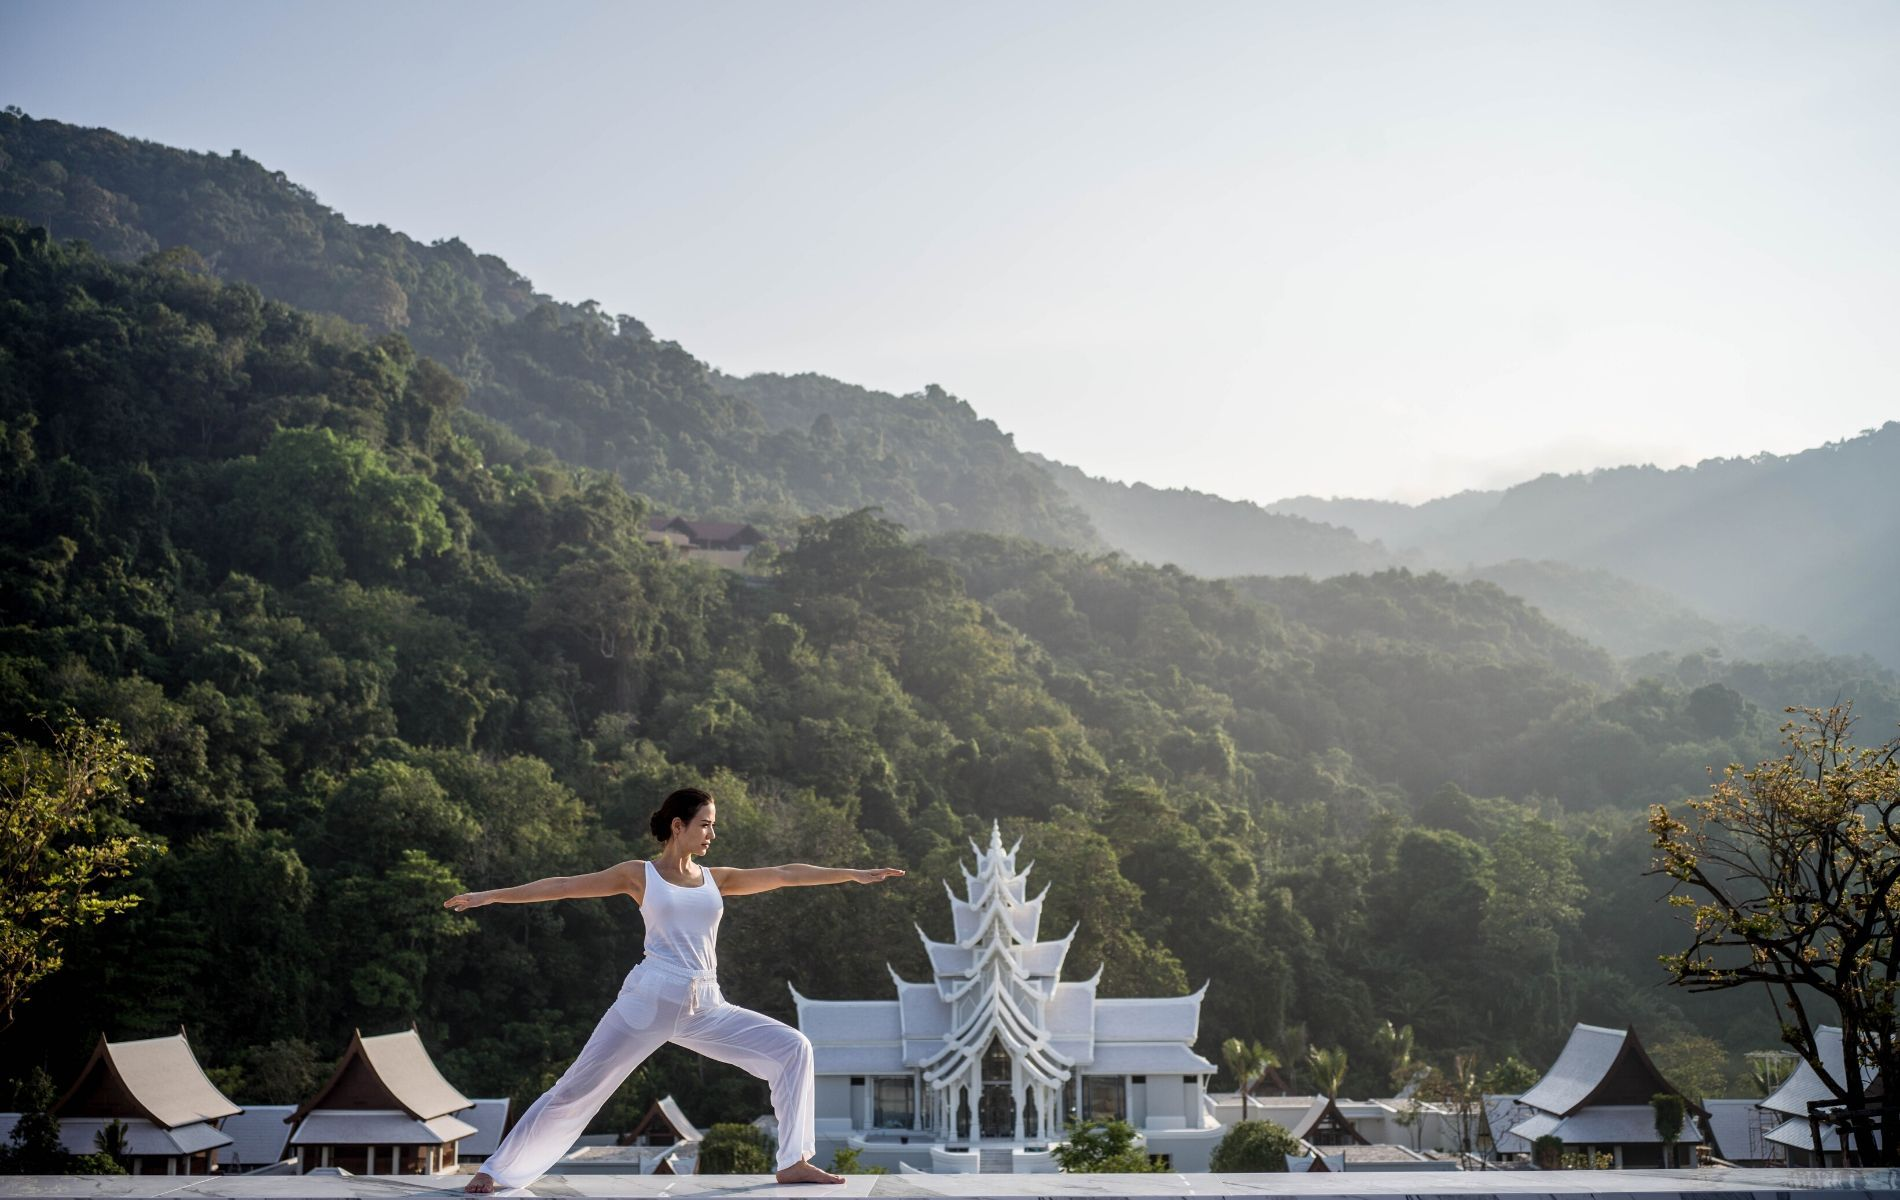 6 Things To Do At InterContinental Phuket Resort For An Unforgettable Stay